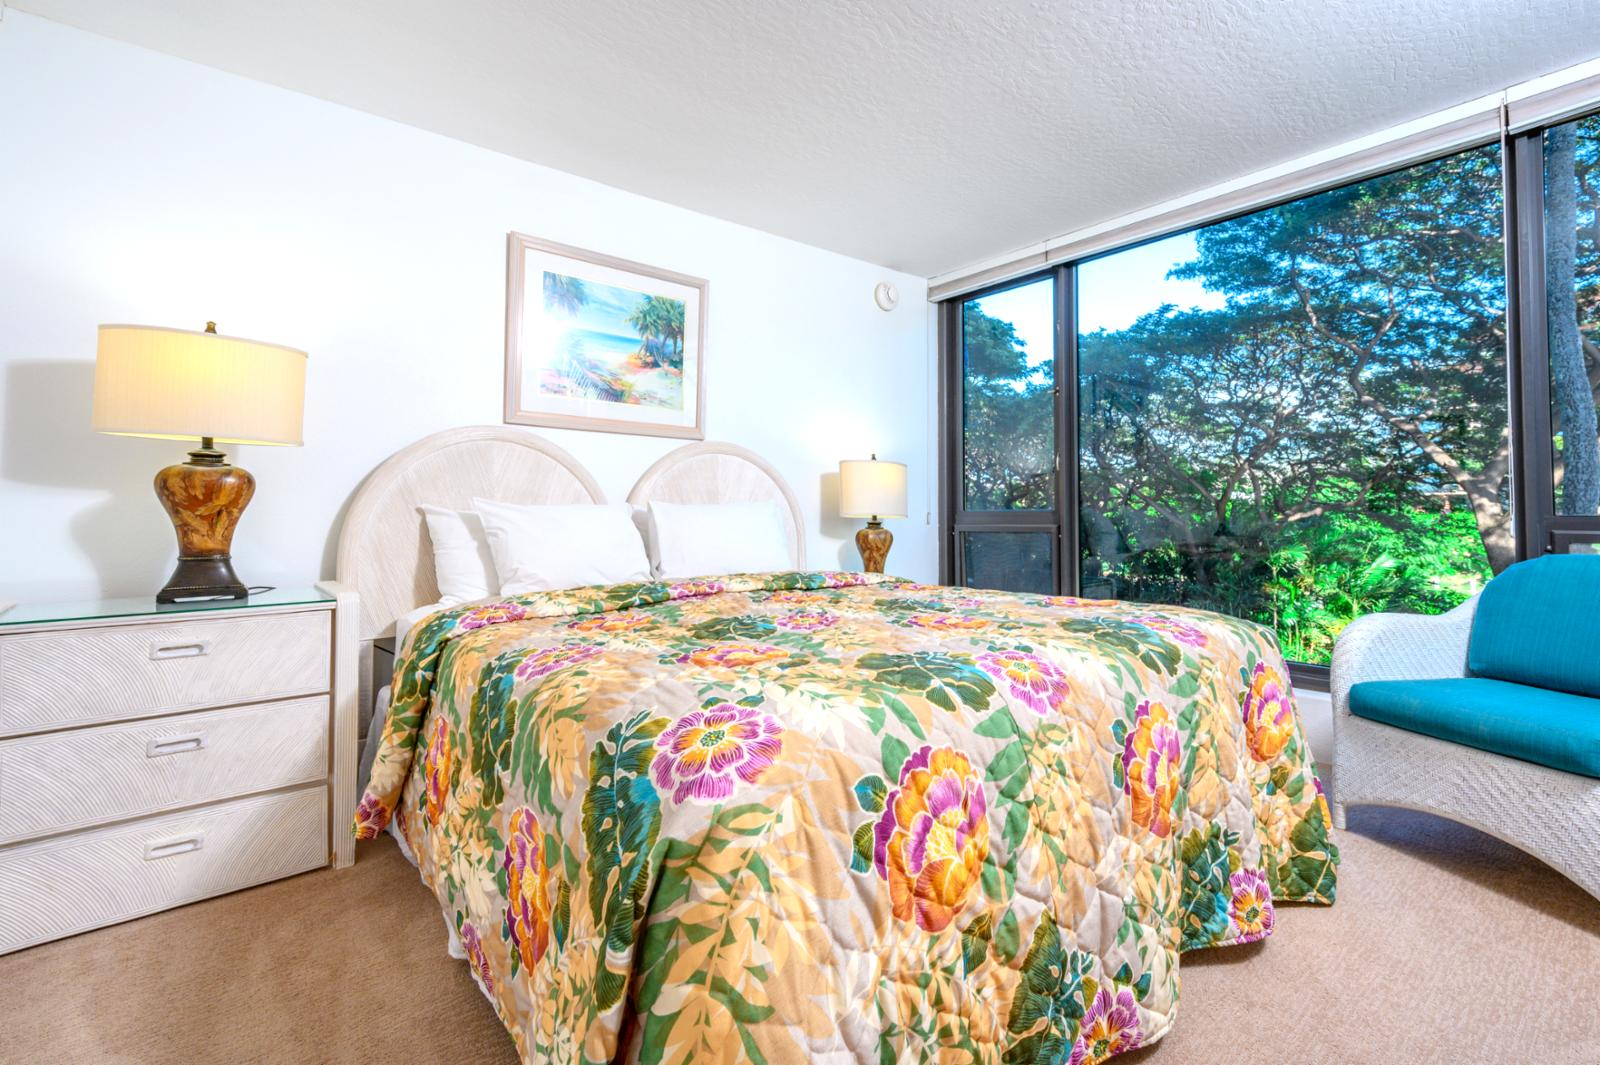 Large comfortable King bed with resort views and natural lighting